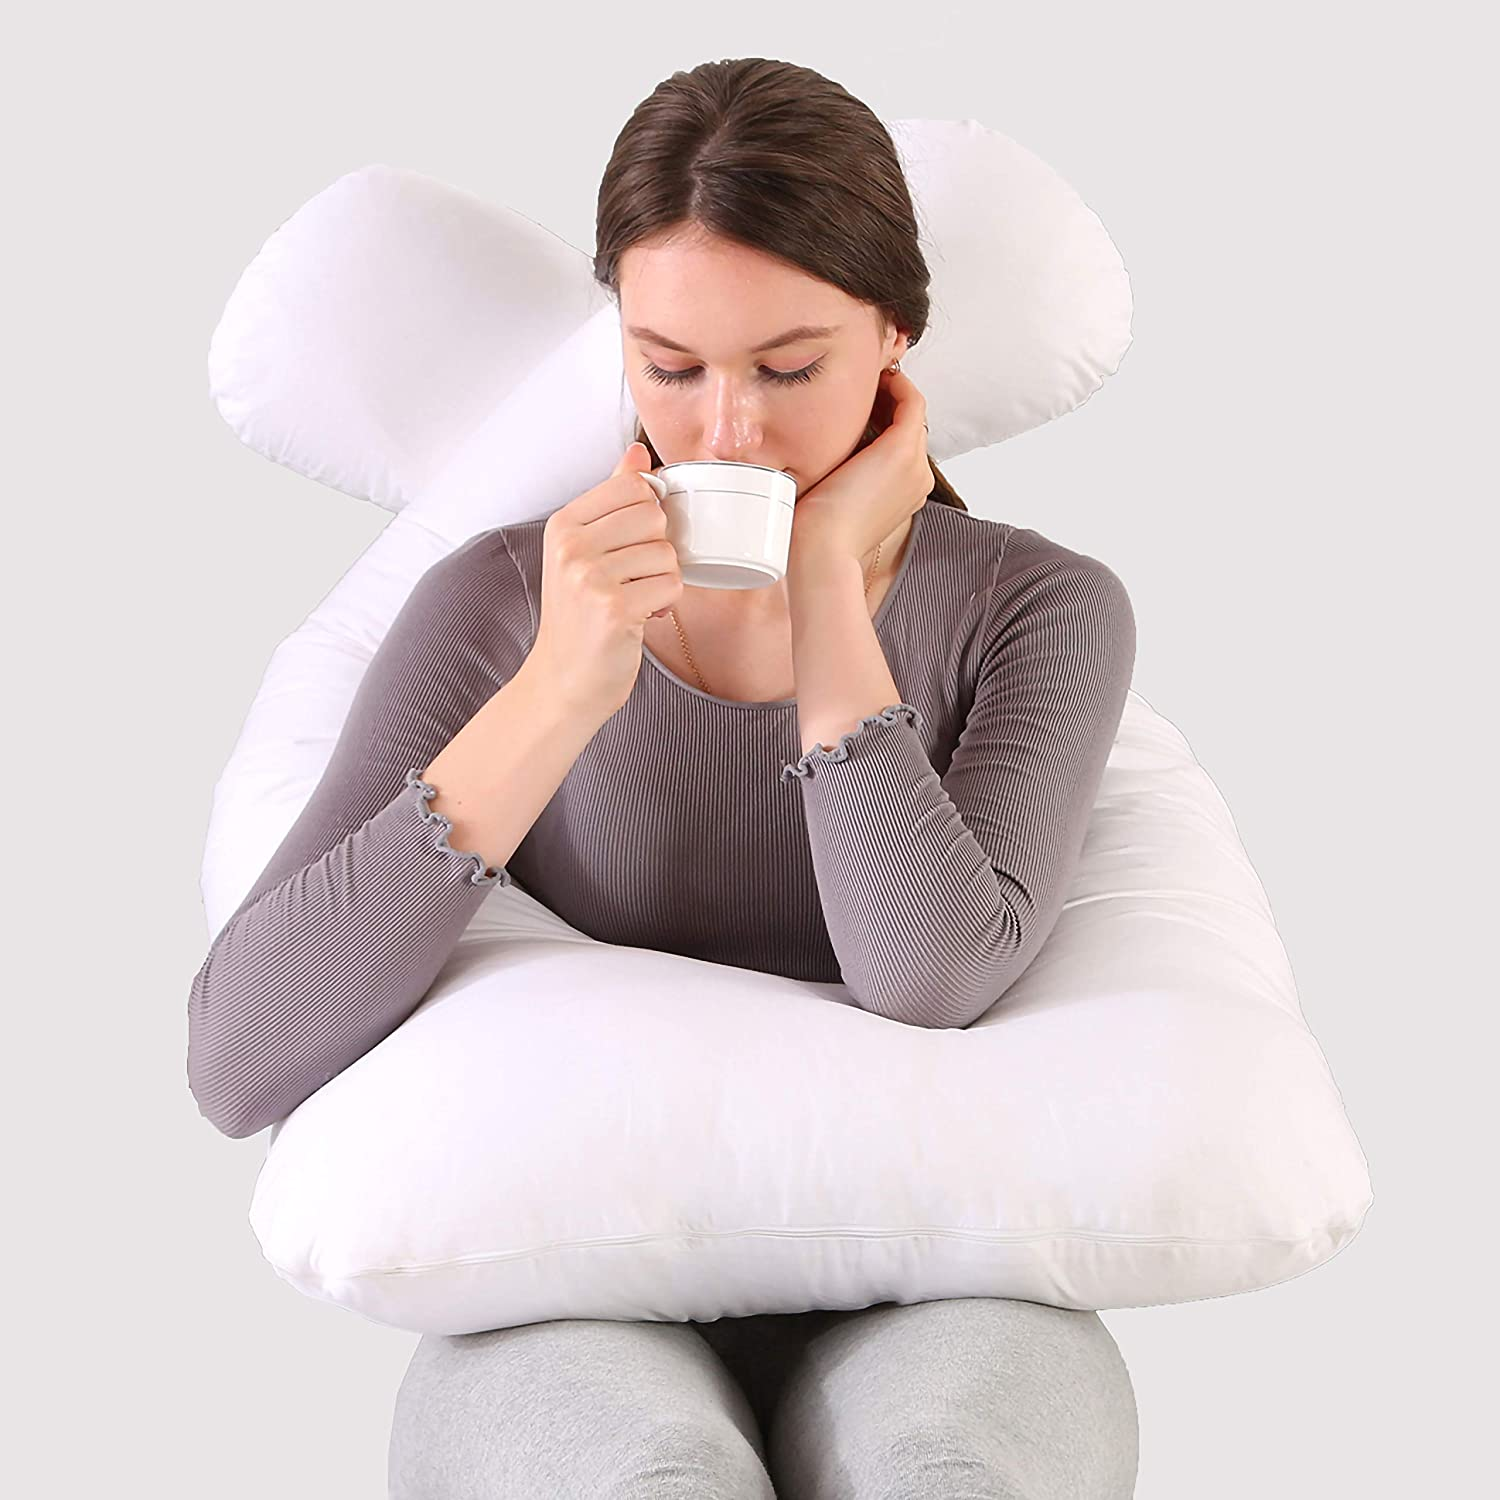 Pregnant Women's Pillows 55-inch White Chicago Mall U-Shaped Credence Bodied